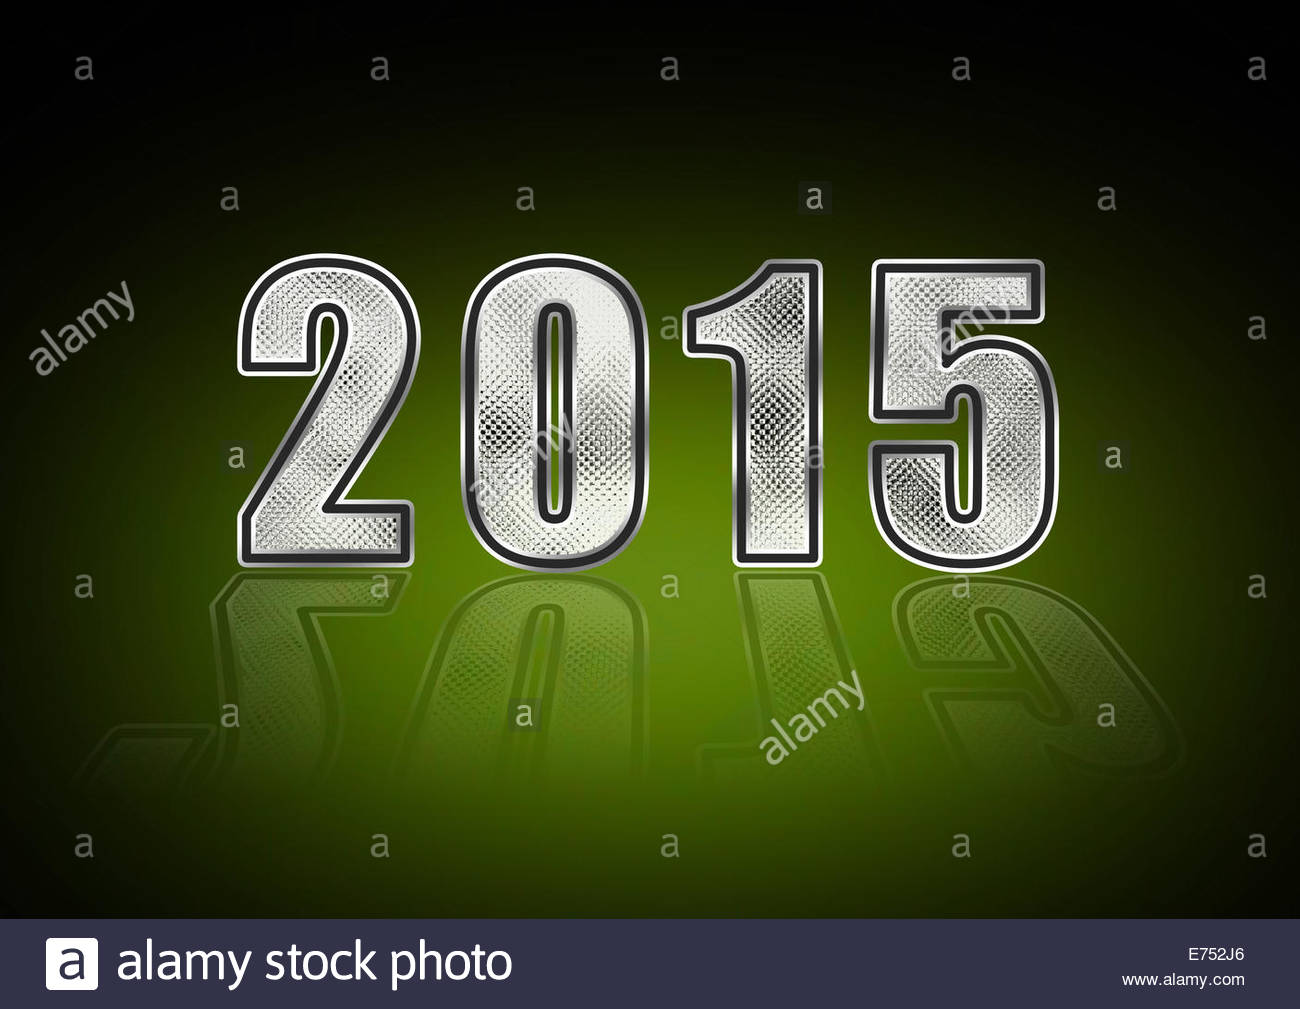 New Year's Eve - Sylvester 2015 - Stock Image